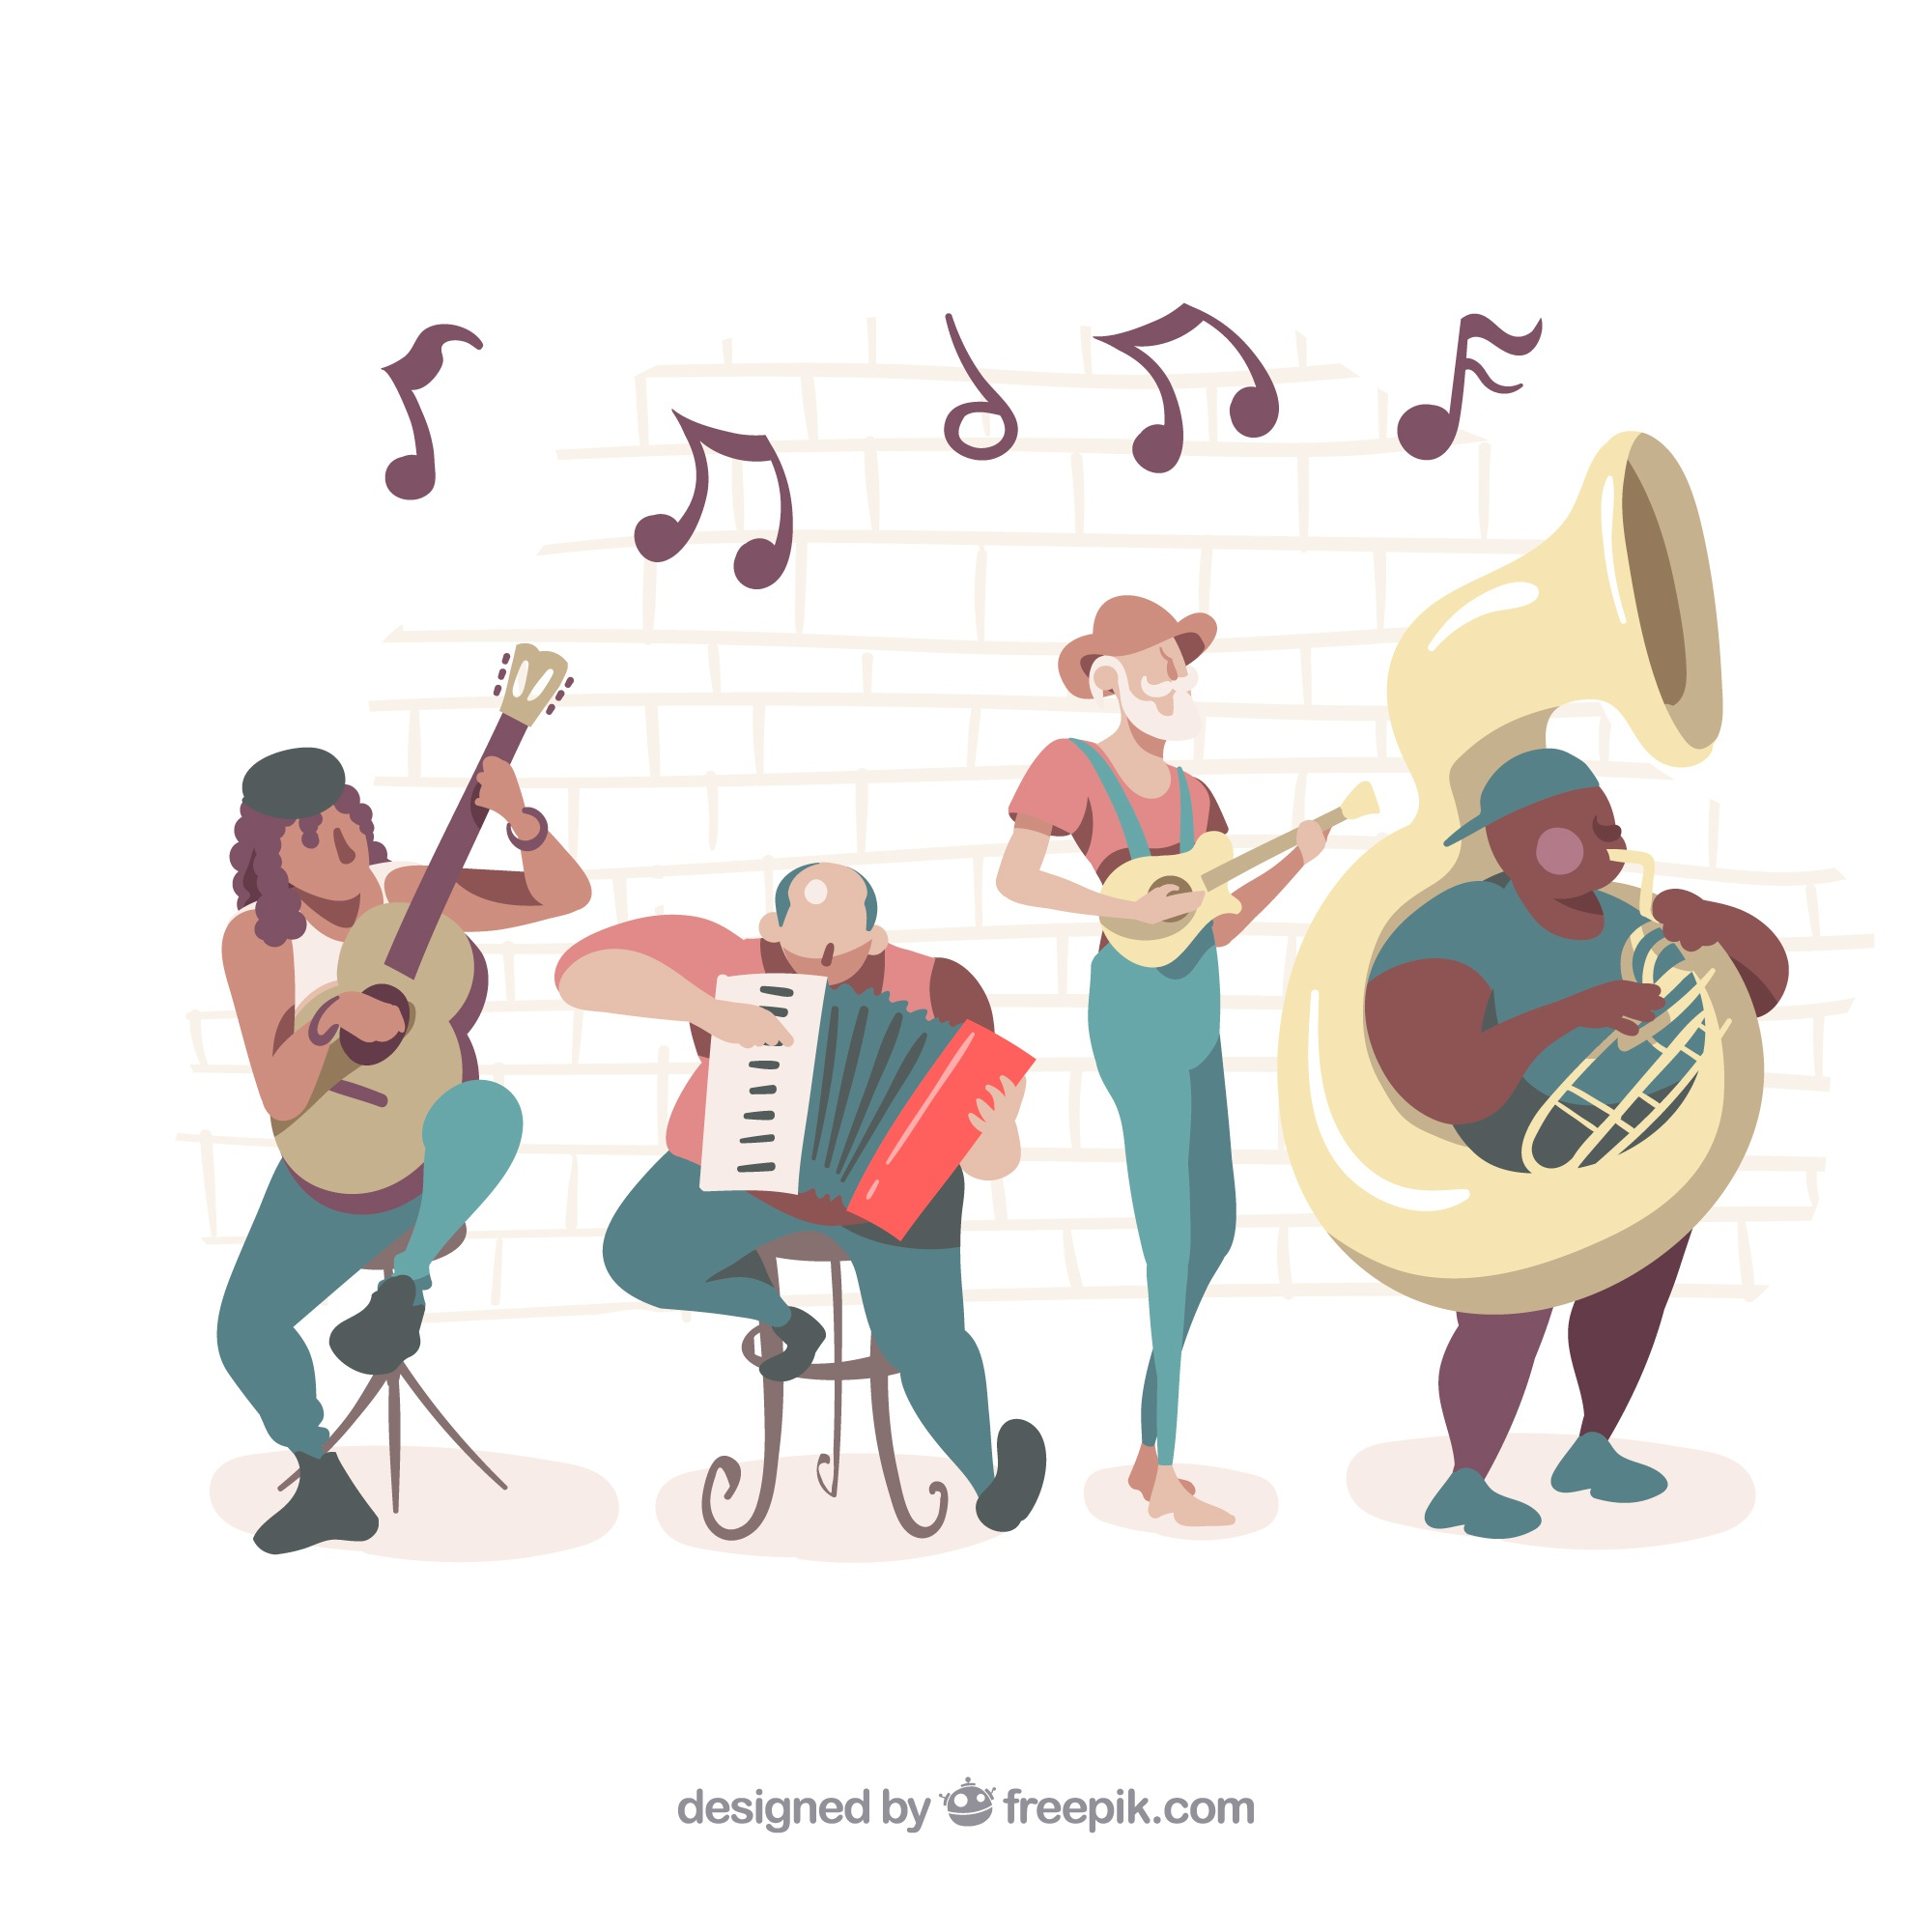 Band illustration playing instruments